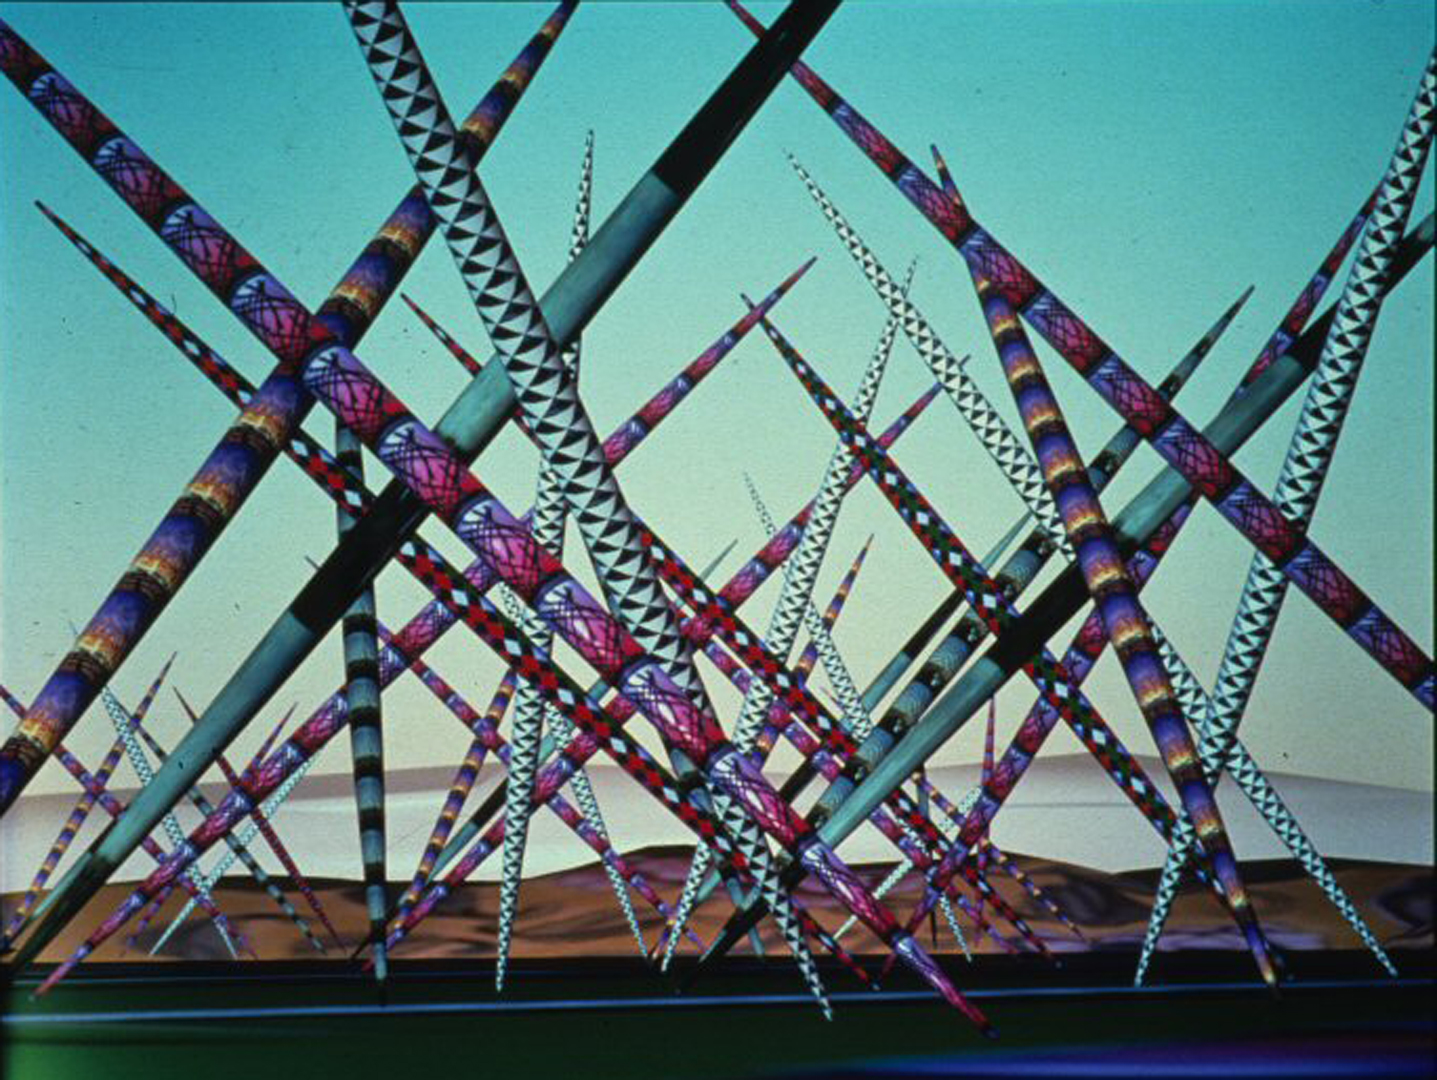 ©1988, Kenneth Snelson, Pole Scape